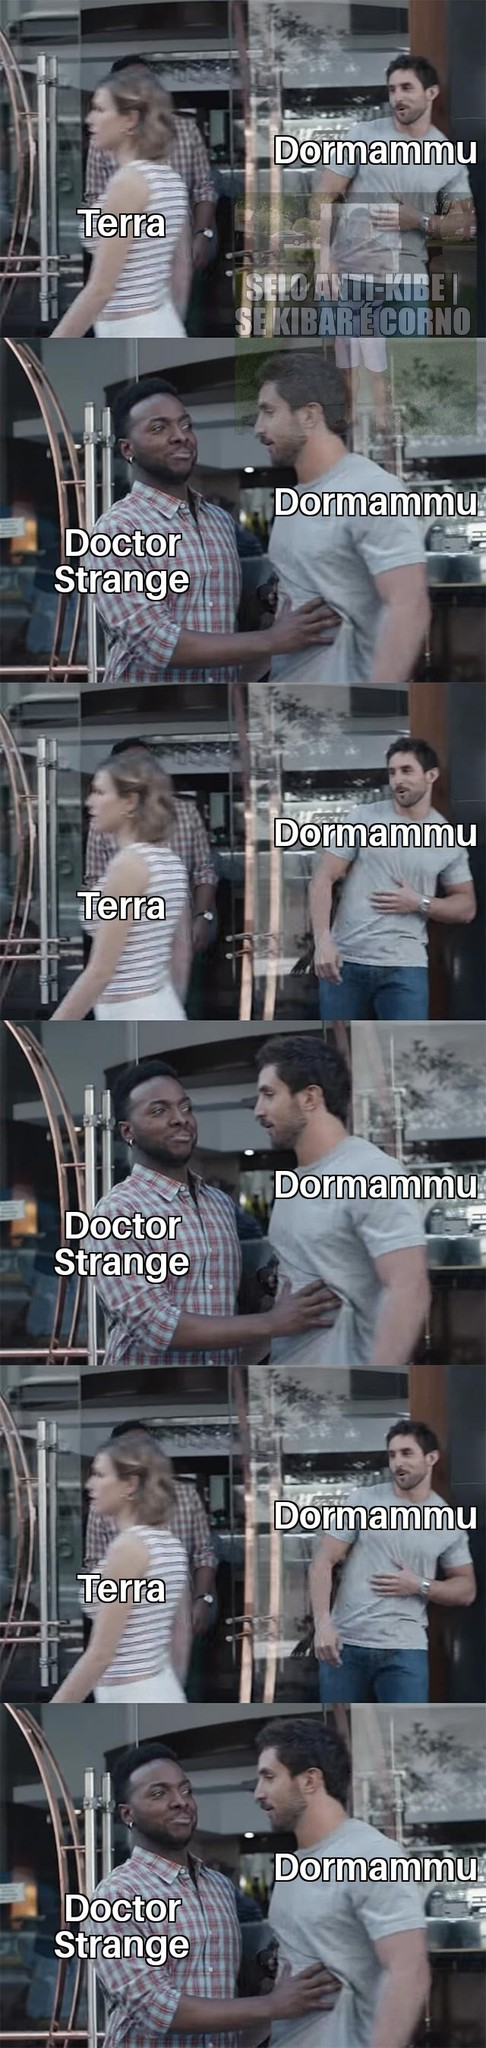 dormammu... I came to bargain :sair: - meme